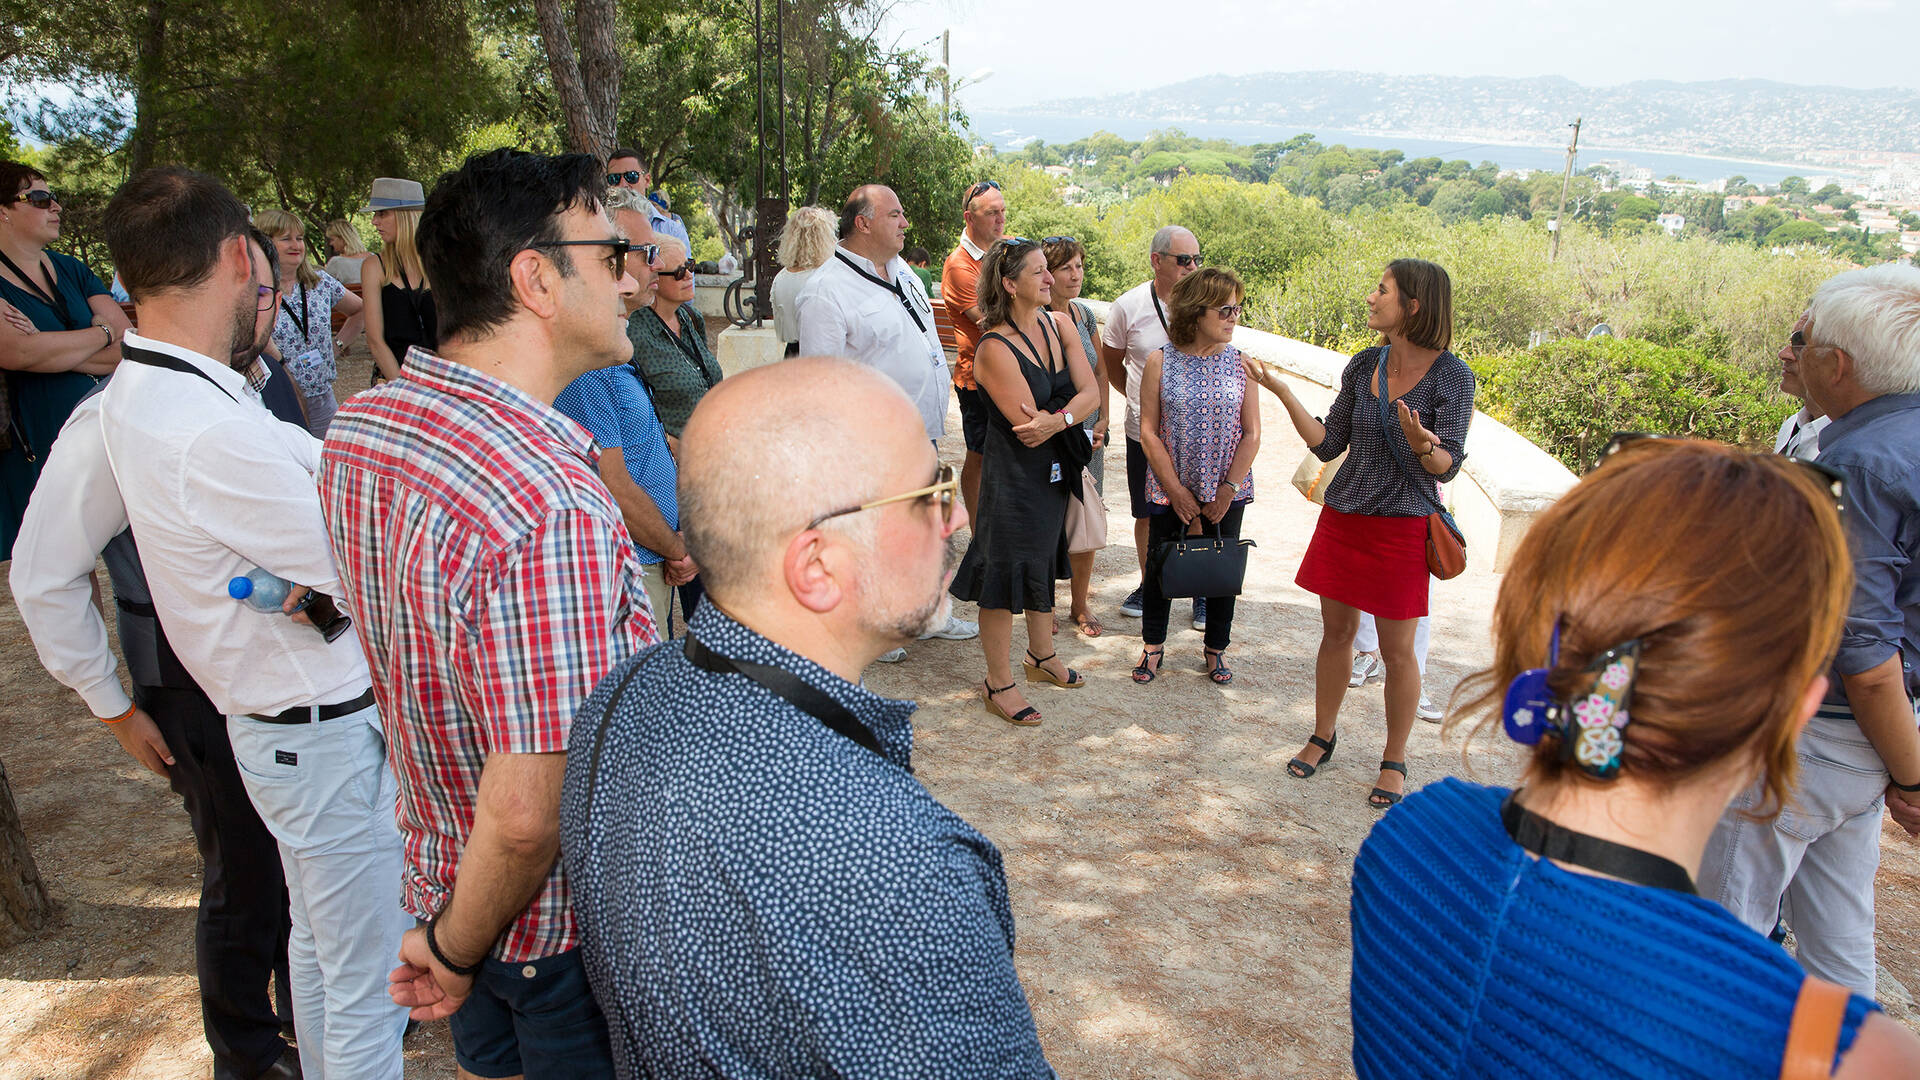 Tour on demand at Cap d'Antibes ©OTC AJLP